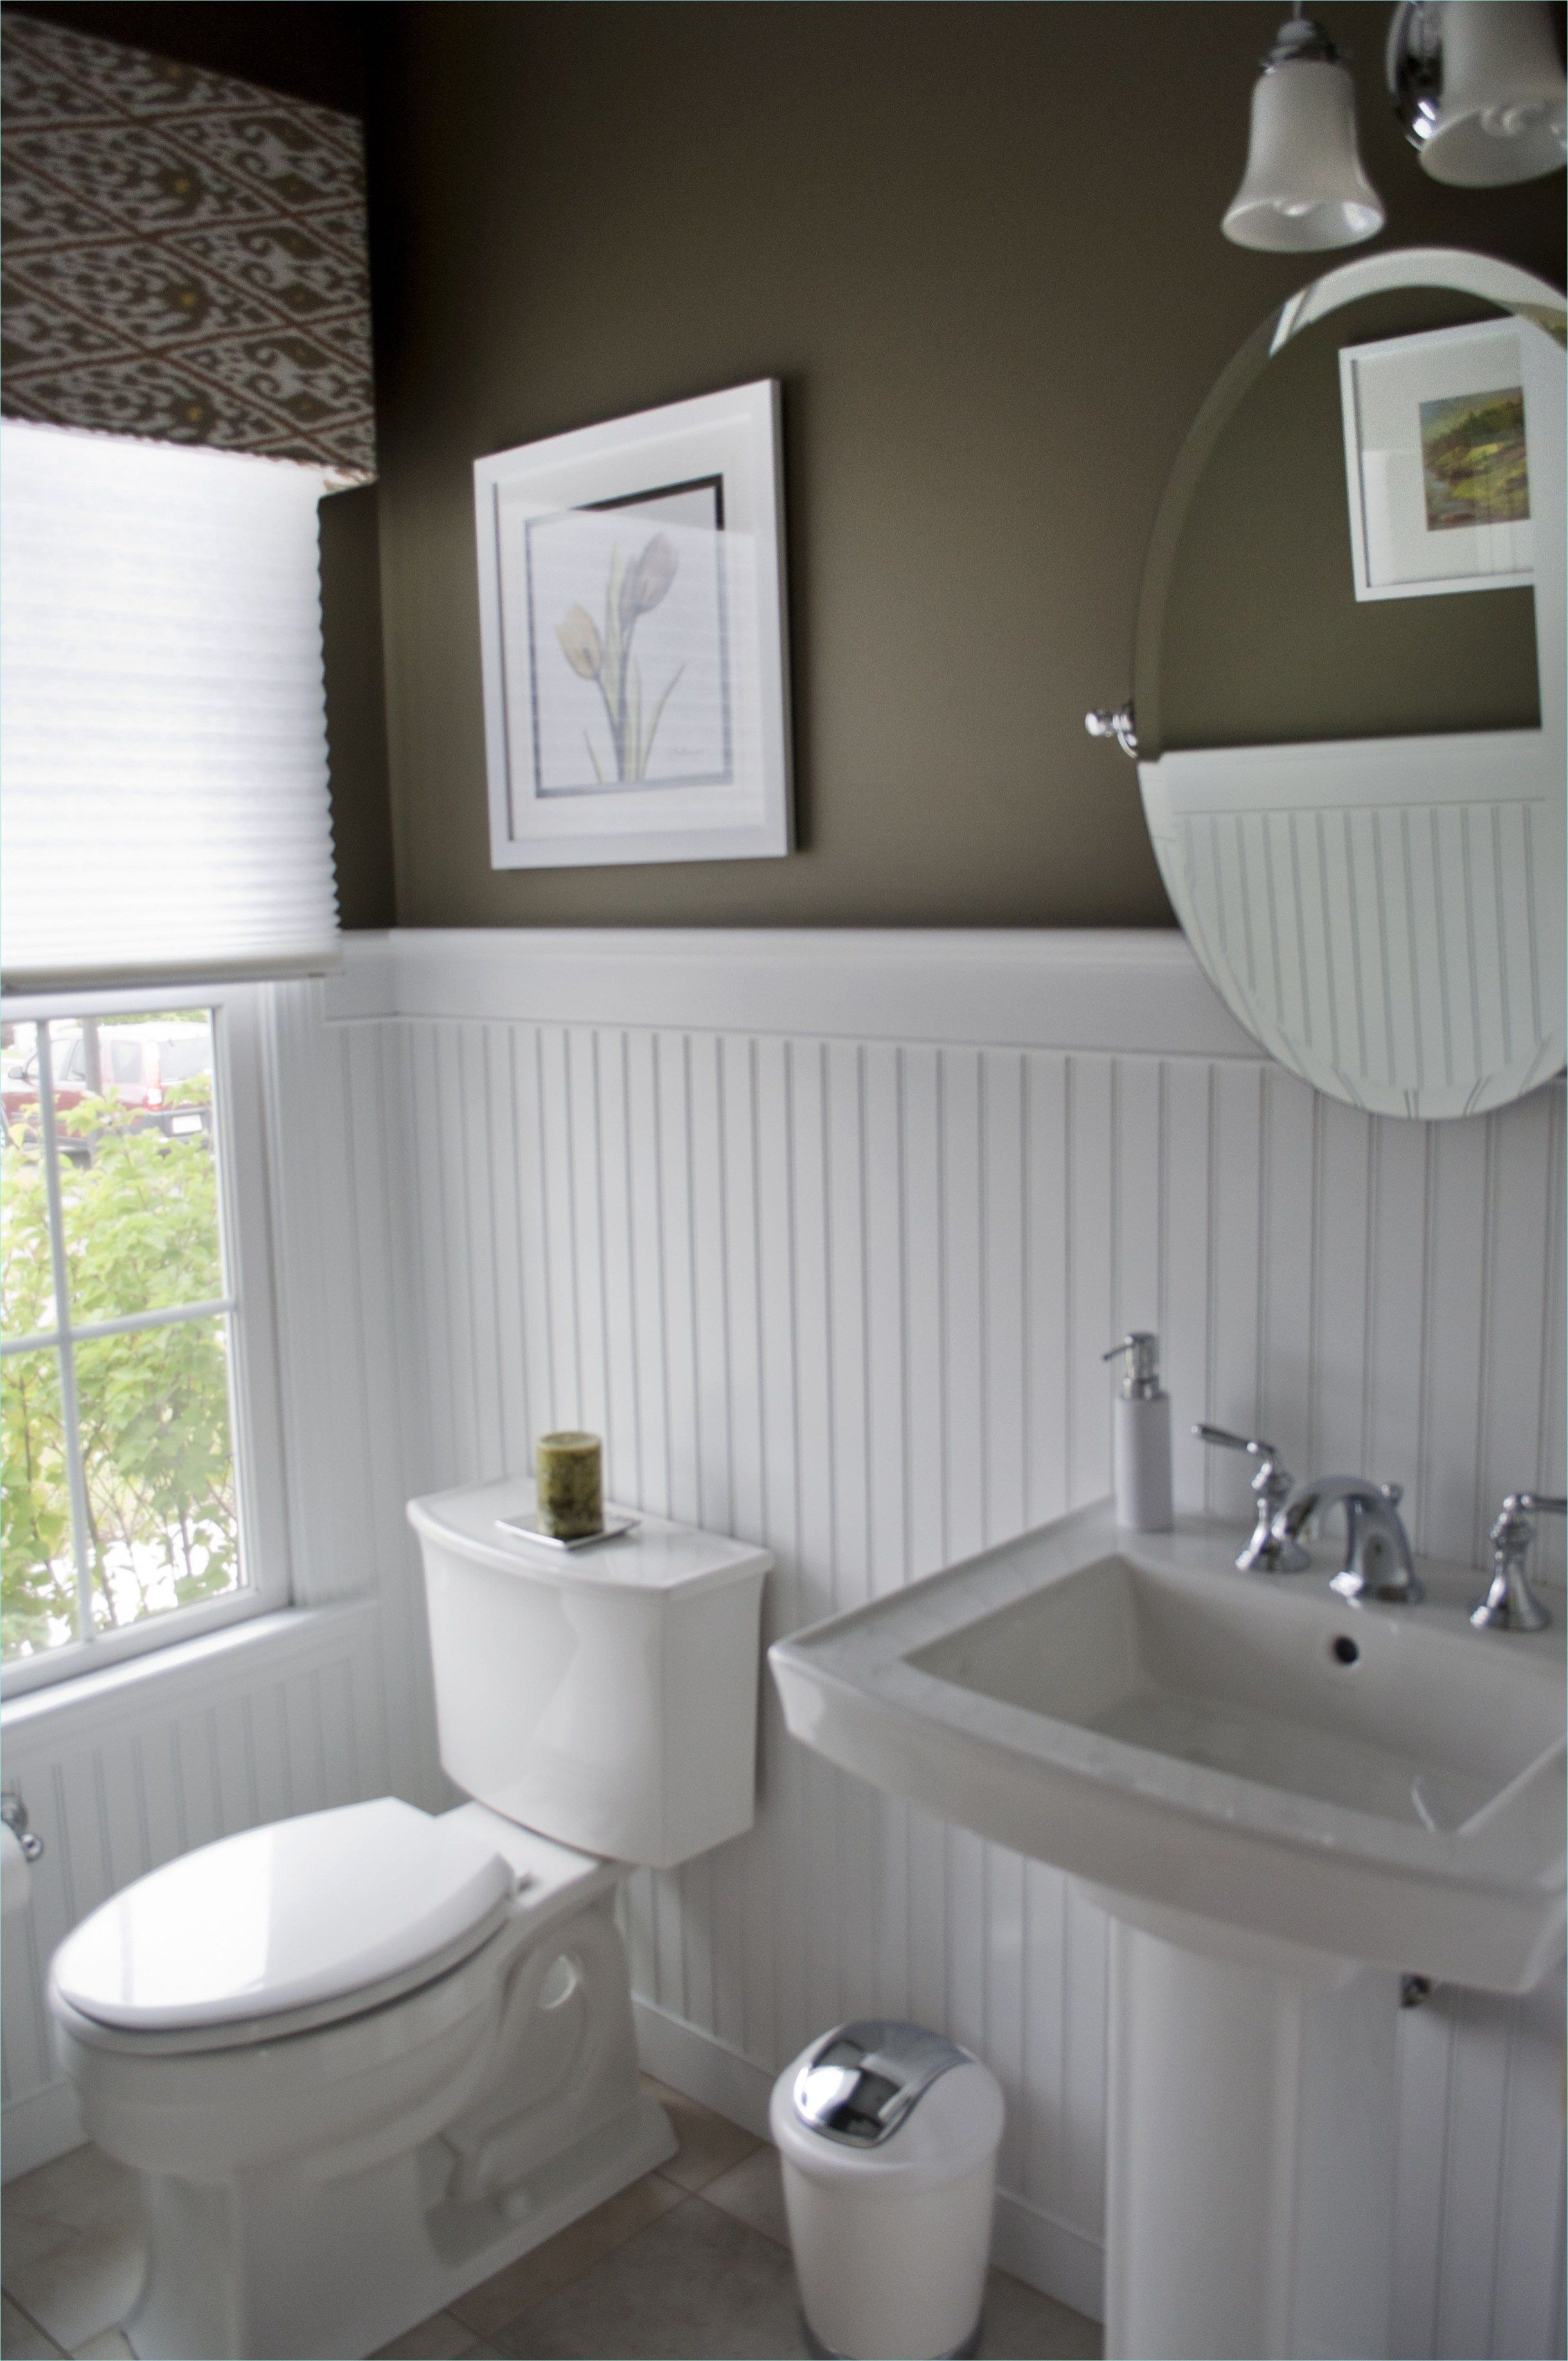 Coolest Small Bathrooms With Wainscoting Beadboard Wainscoting Beadboard Bathroom Wainscoting Bathroom